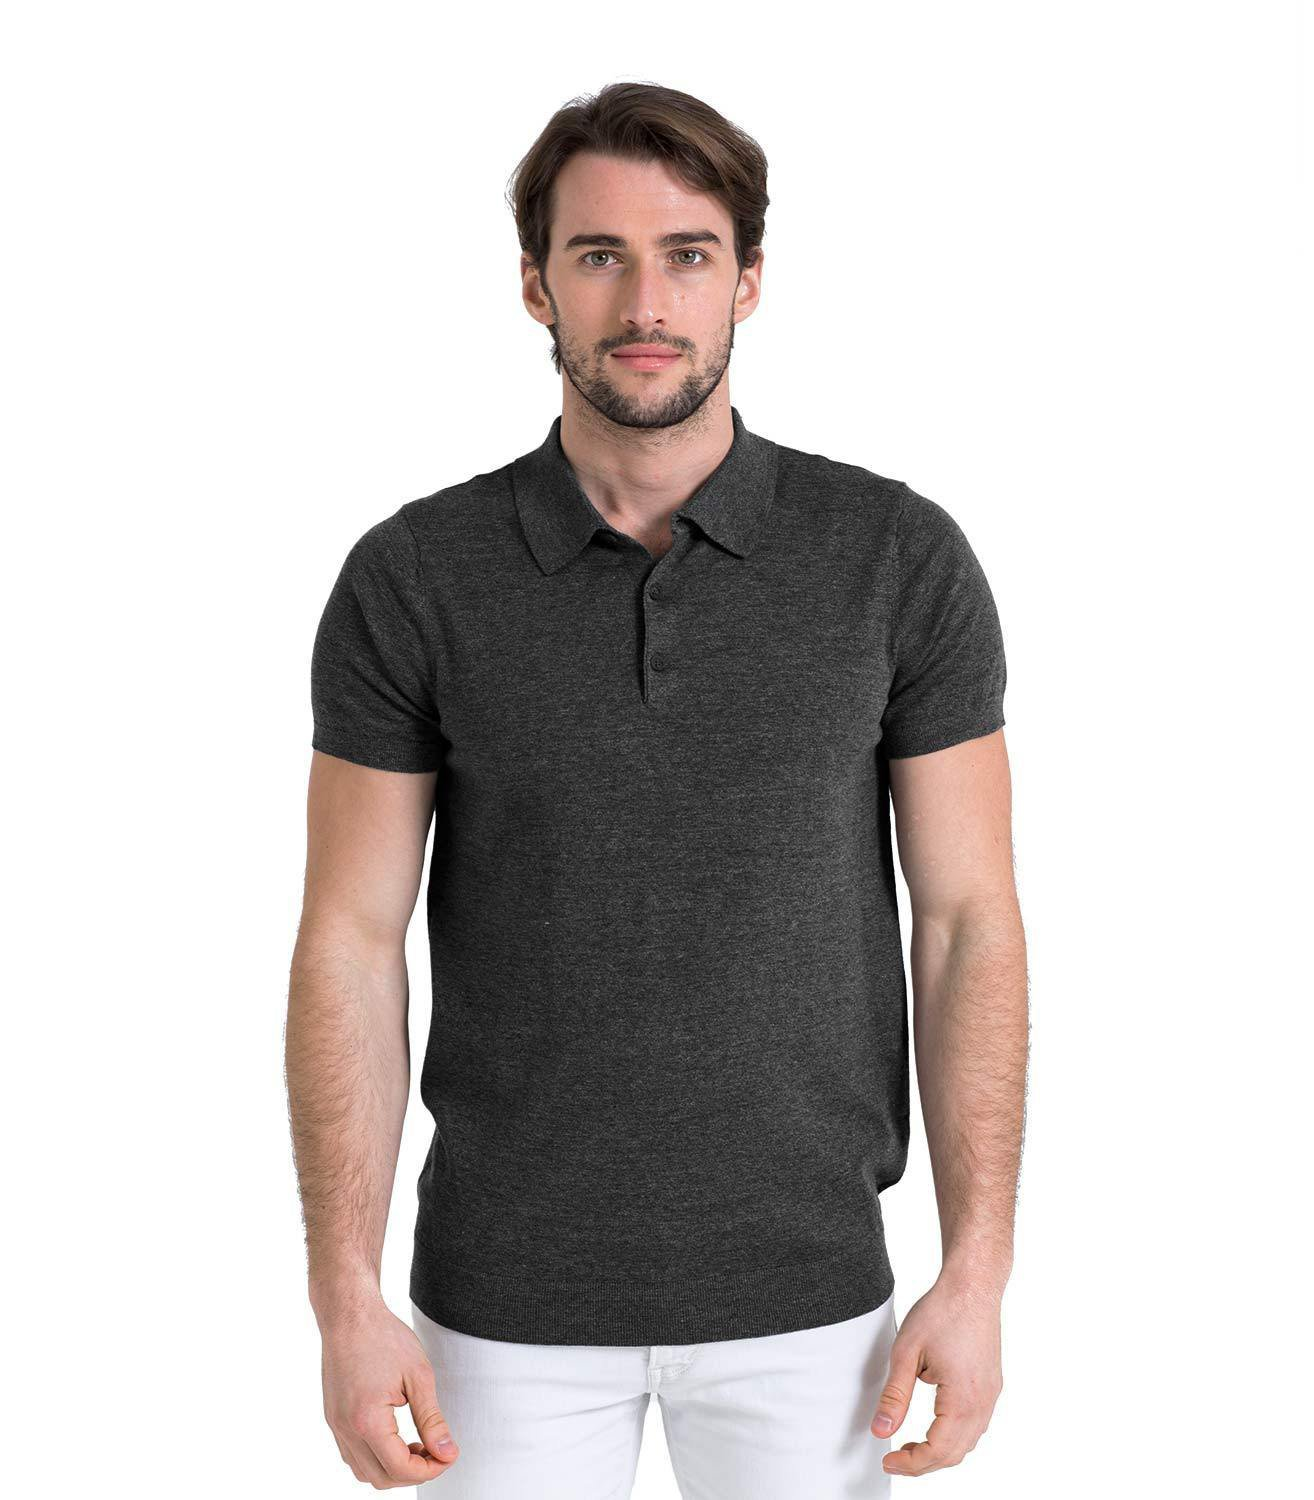 WoolOvers Mens Pure Cotton Polo Shirt Short Sleeve Casual T-Shirt Tee Top